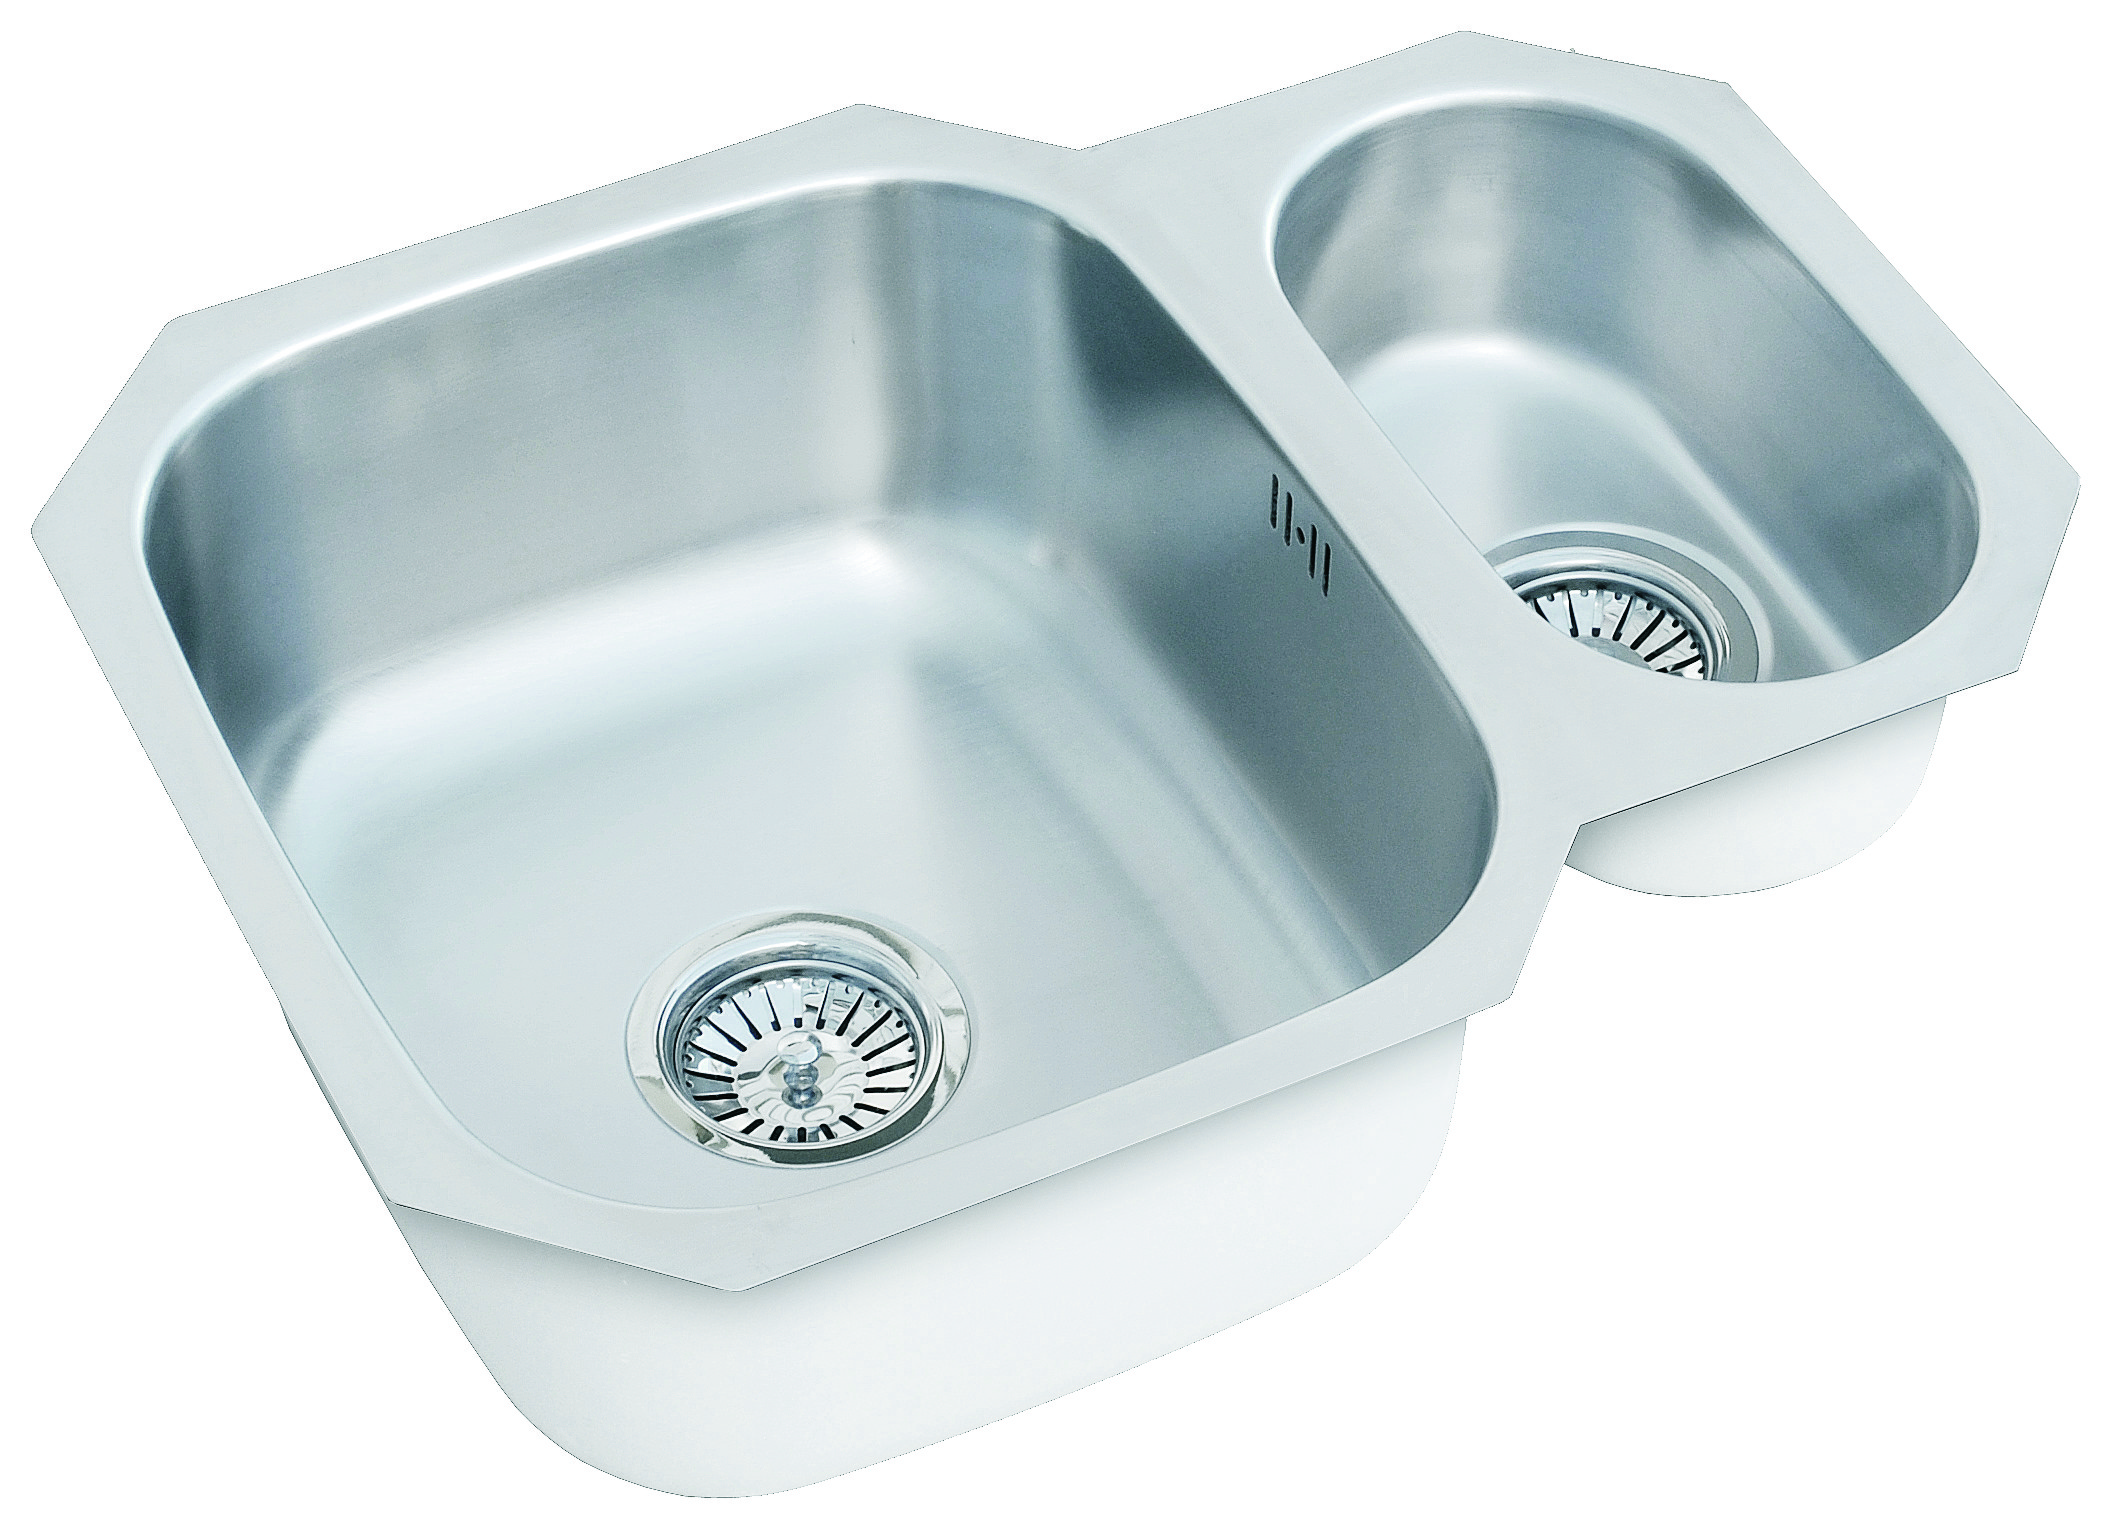 Kitchen Sinks and Taps, Choosing Sinks and Taps - Kitchen Components ...